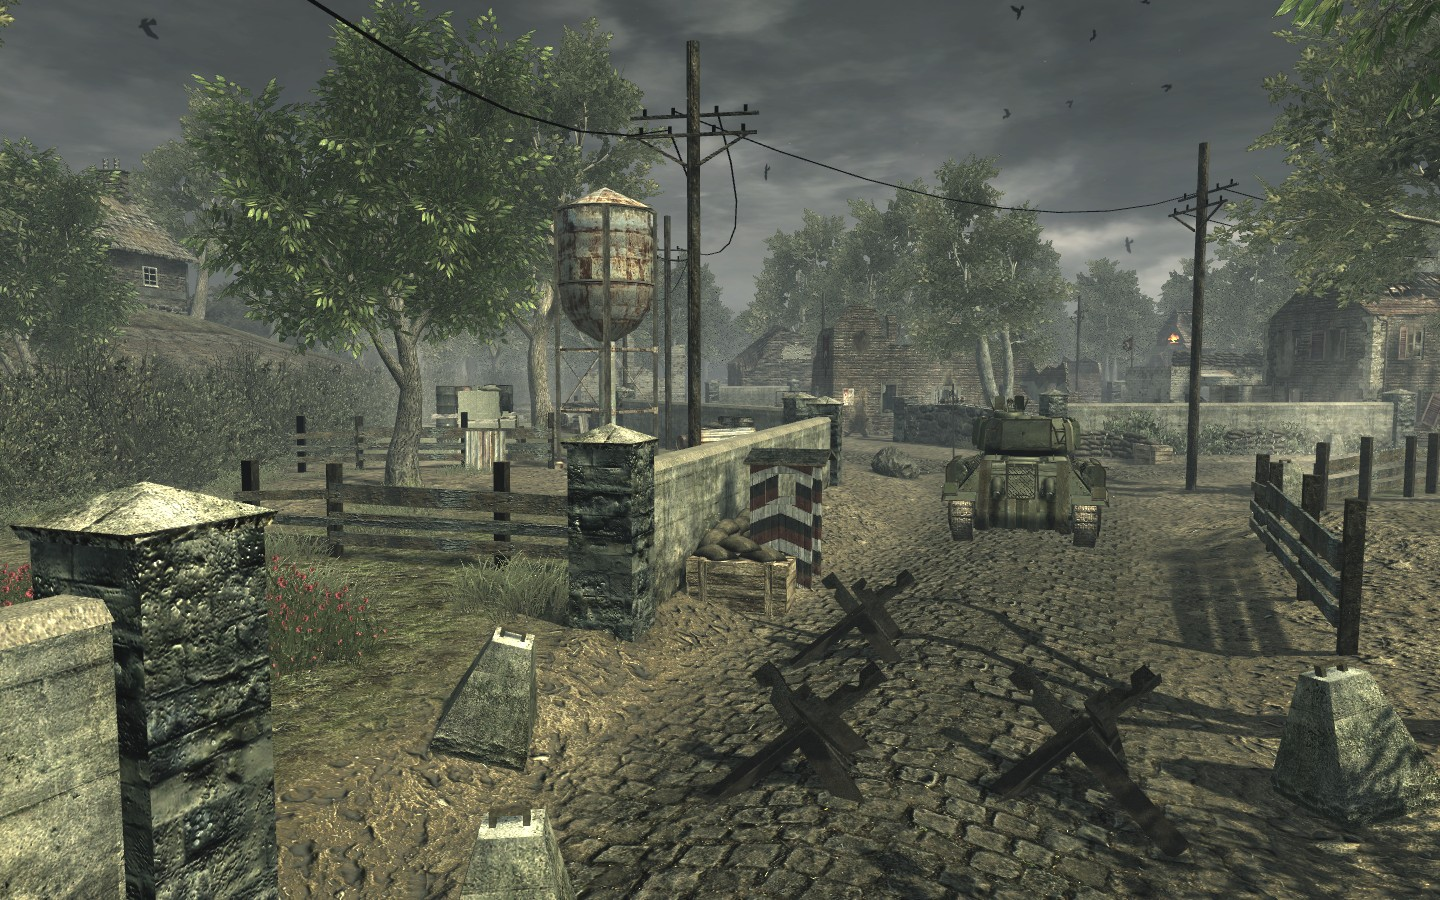 Cod 5 Maps Cod 5 map download Cod 5 Maps